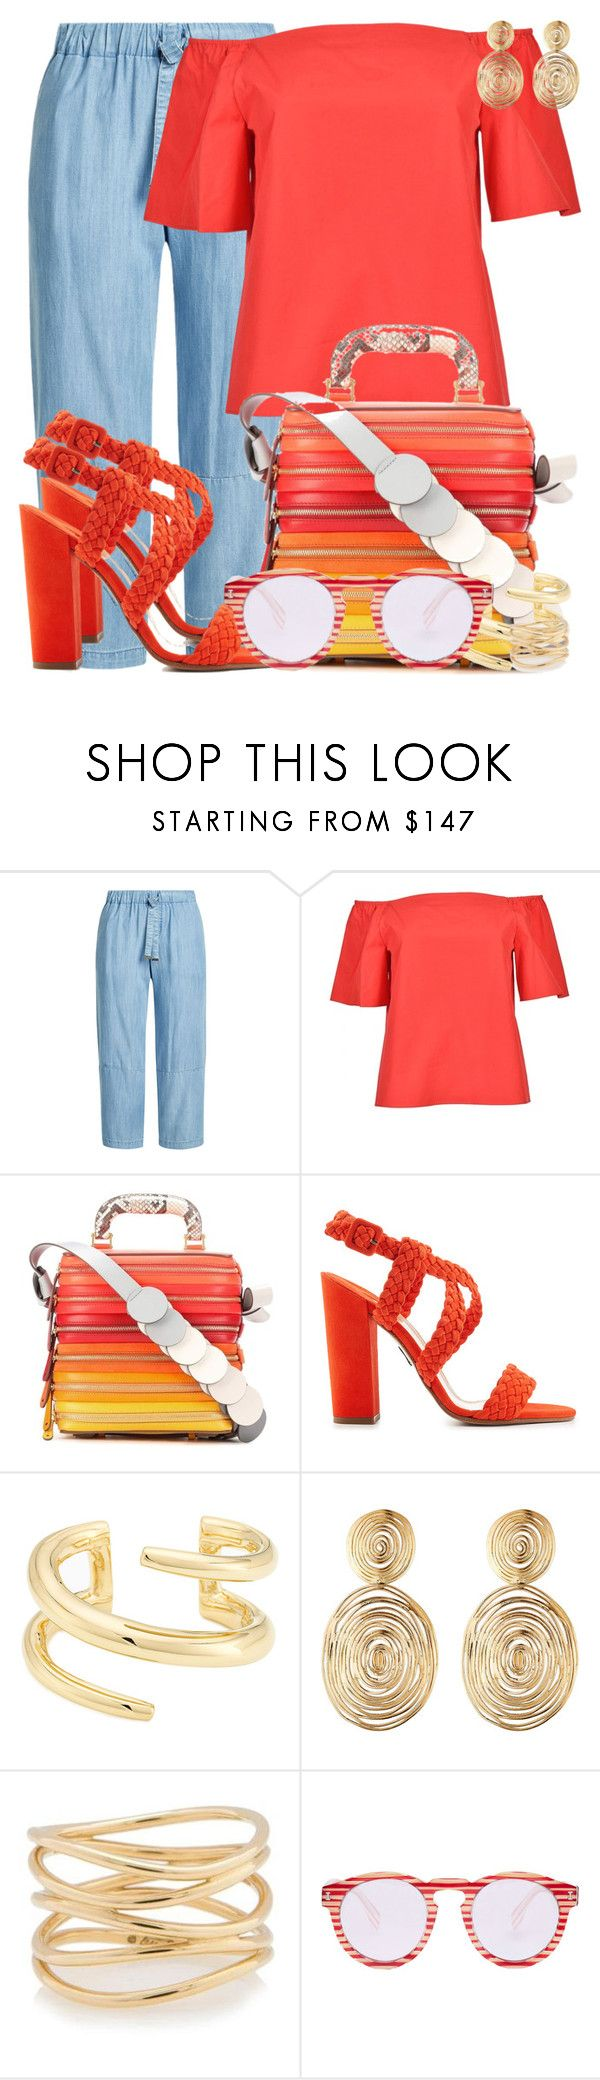 """""""Anya Hindmarch Circle Six Zip Stack Leather Shoulder Bag"""" by dazzlious ❤ liked on Polyvore featuring Steffen Schraut, Alice + Olivia, Anya Hindmarch, Paul Andrew, Jennifer Fisher, Gas Bijoux, Tiffany & Co. and Illesteva"""